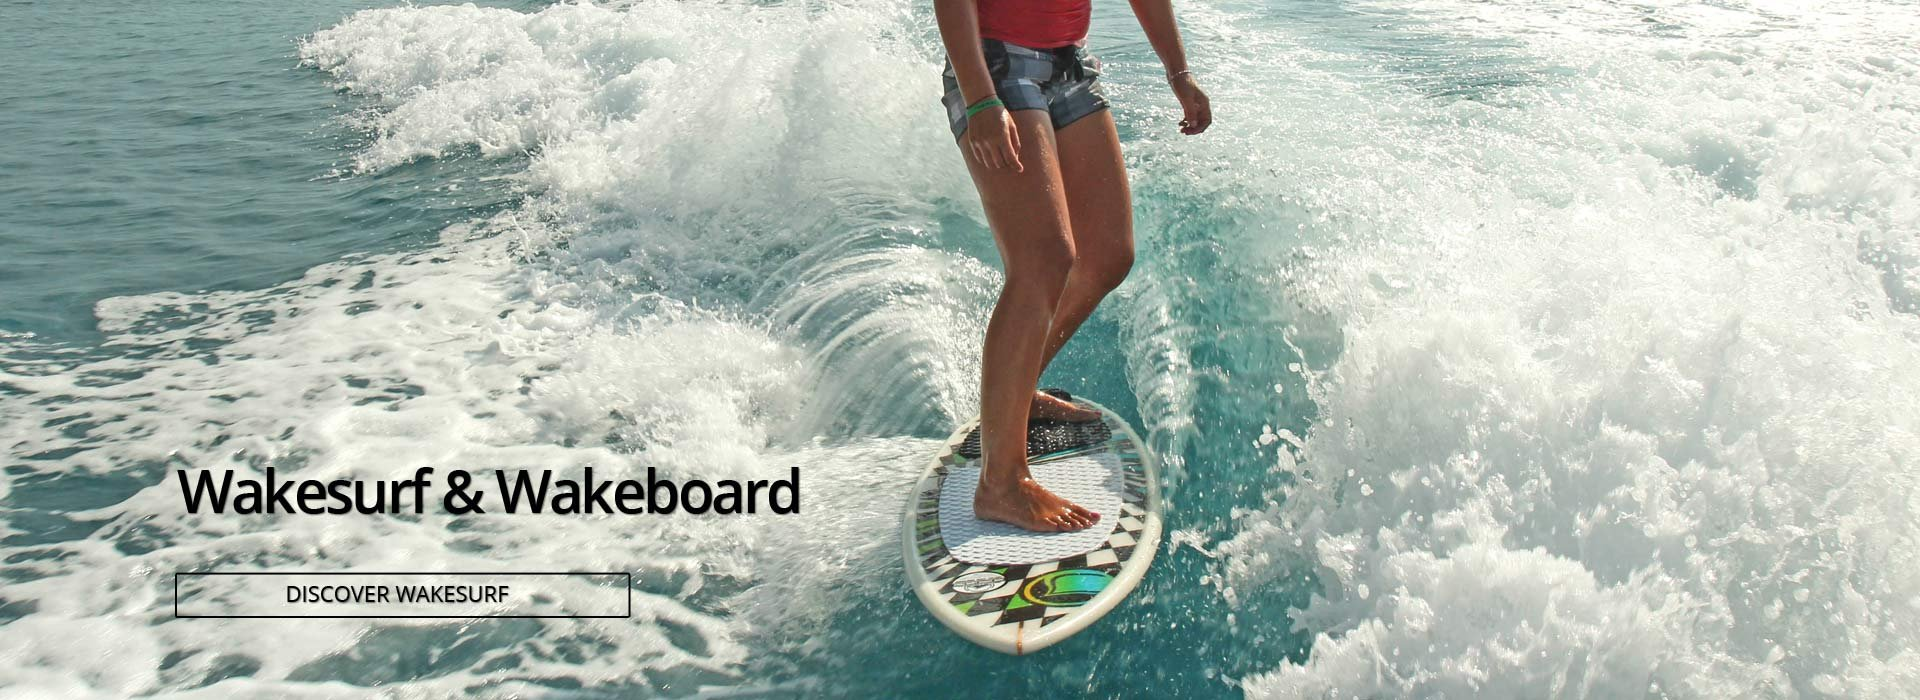 Wakesurf & Wakeboard in Cagnes sur Mer